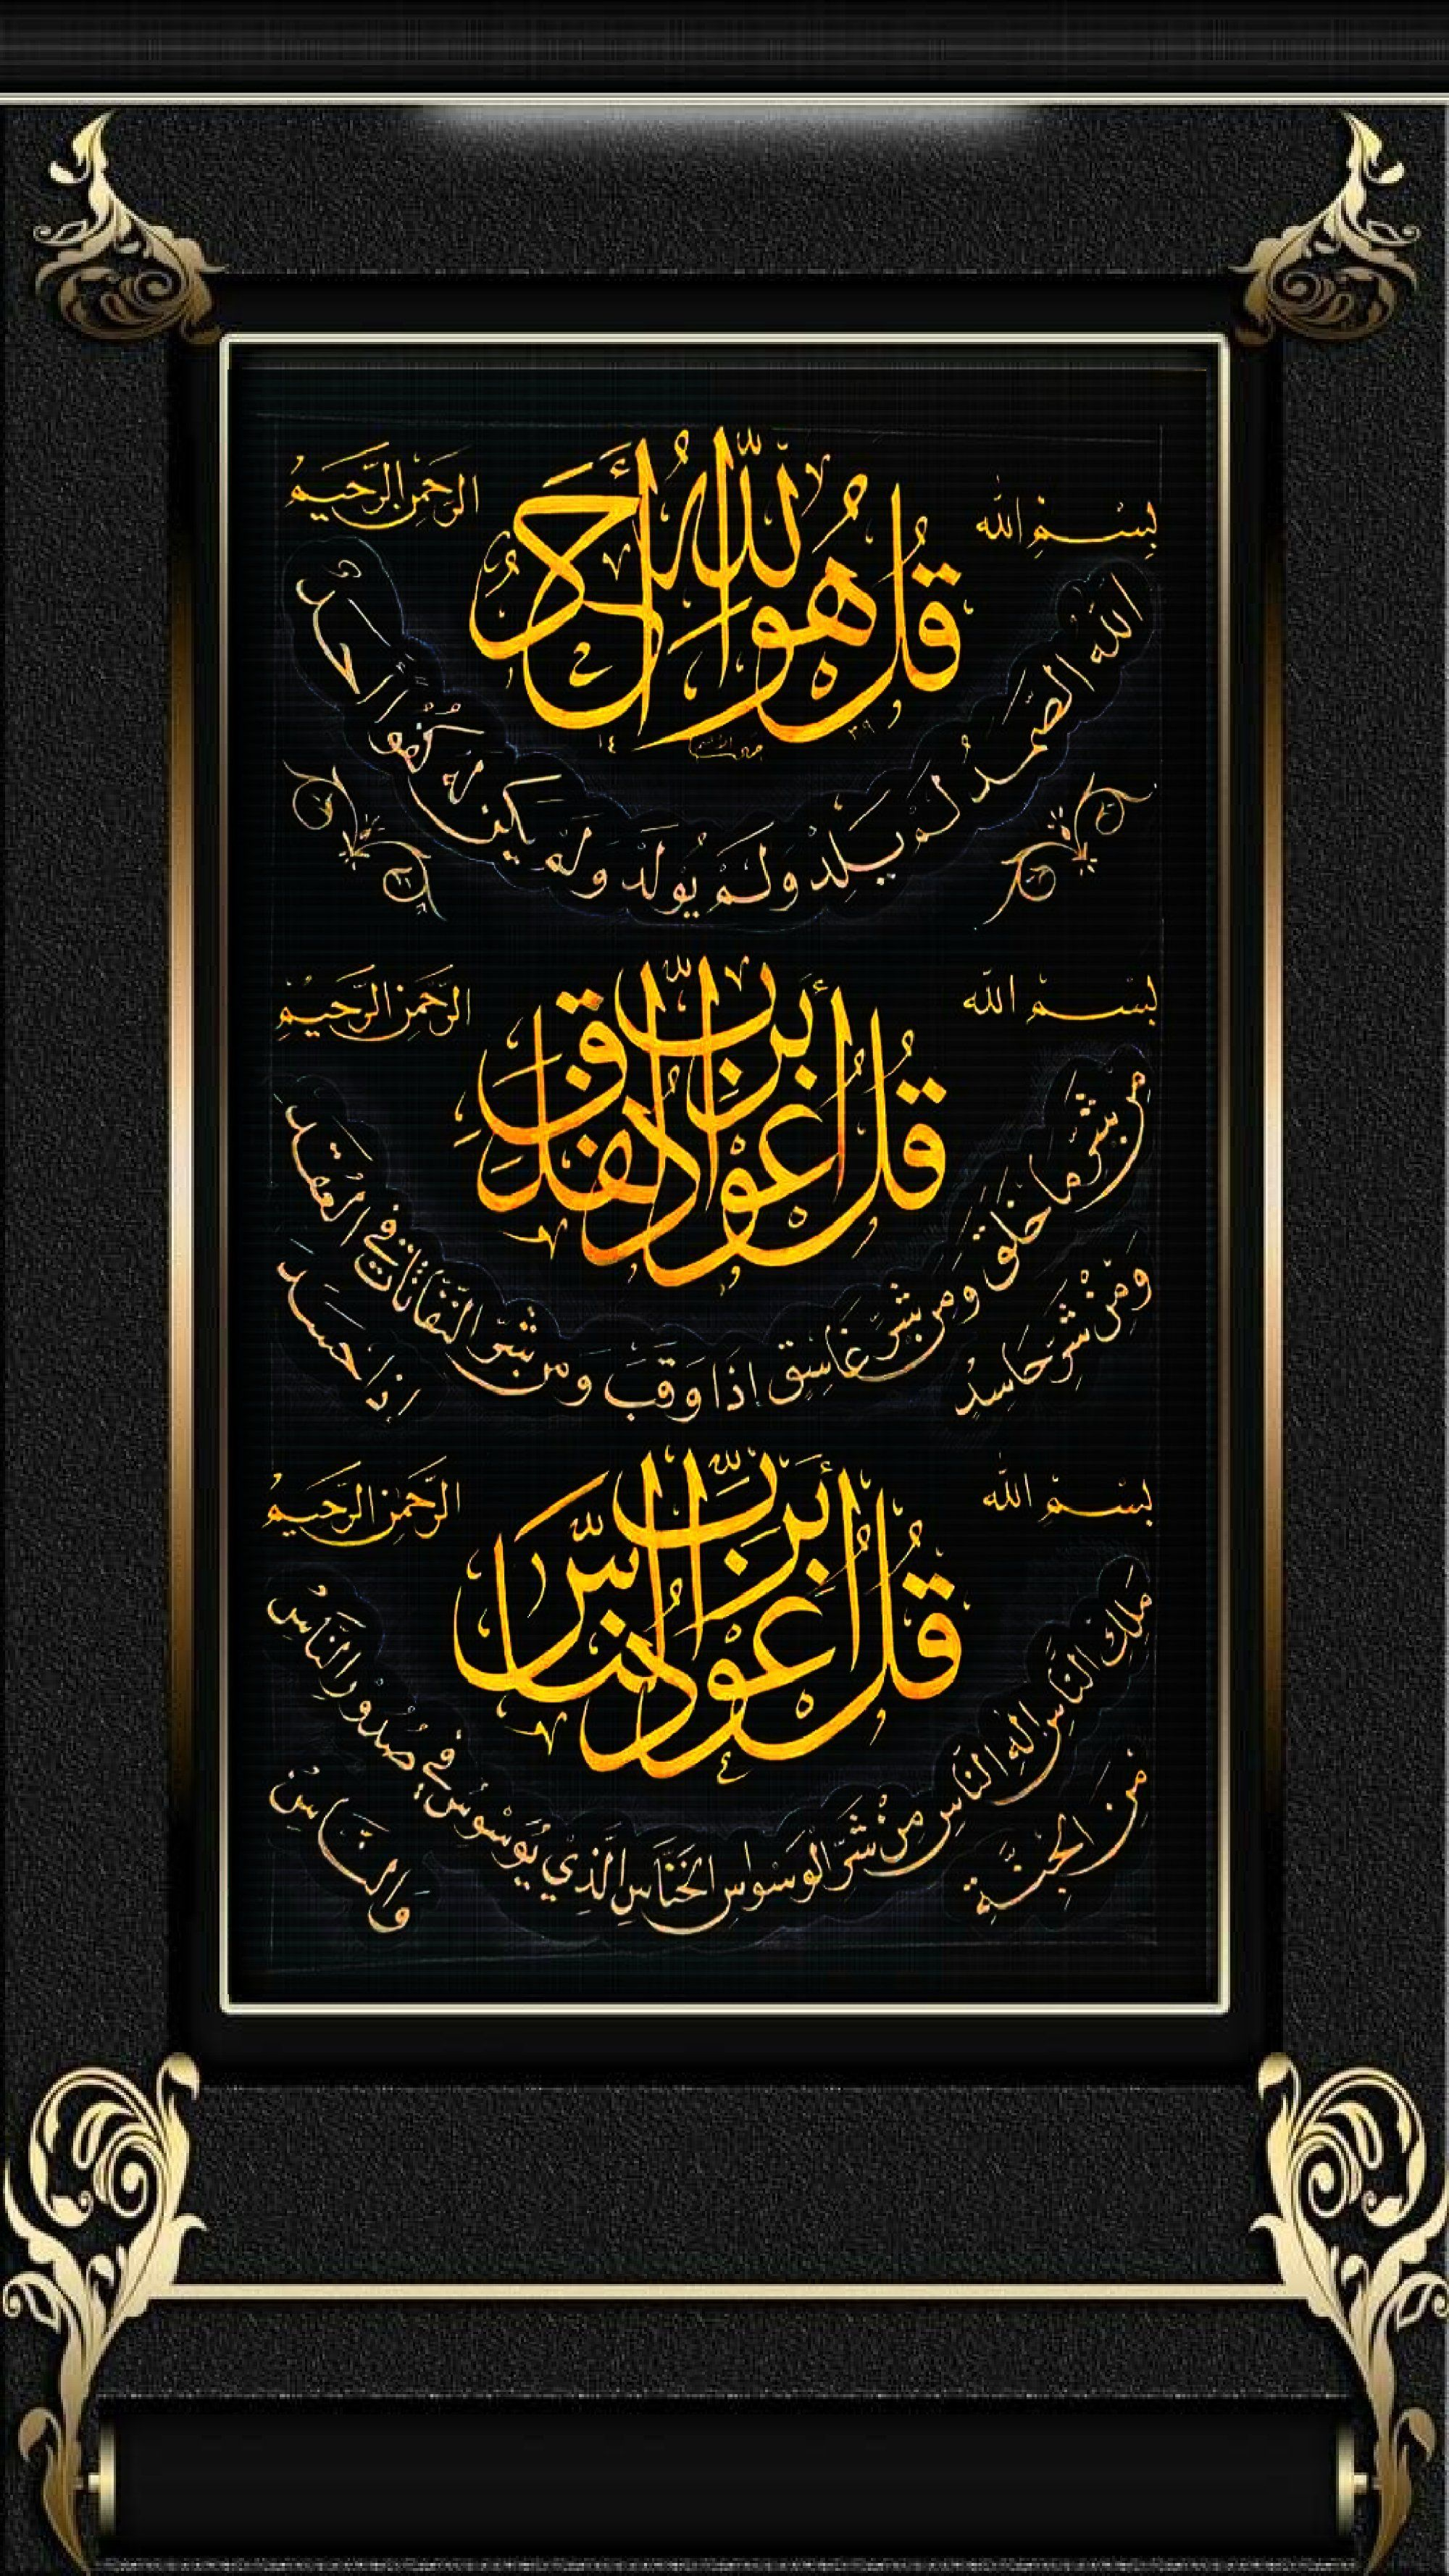 Look At This Picture Because Its Really Impotant Islamic Art Calligraphy Islamic Art Pattern Islamic Calligraphy Painting